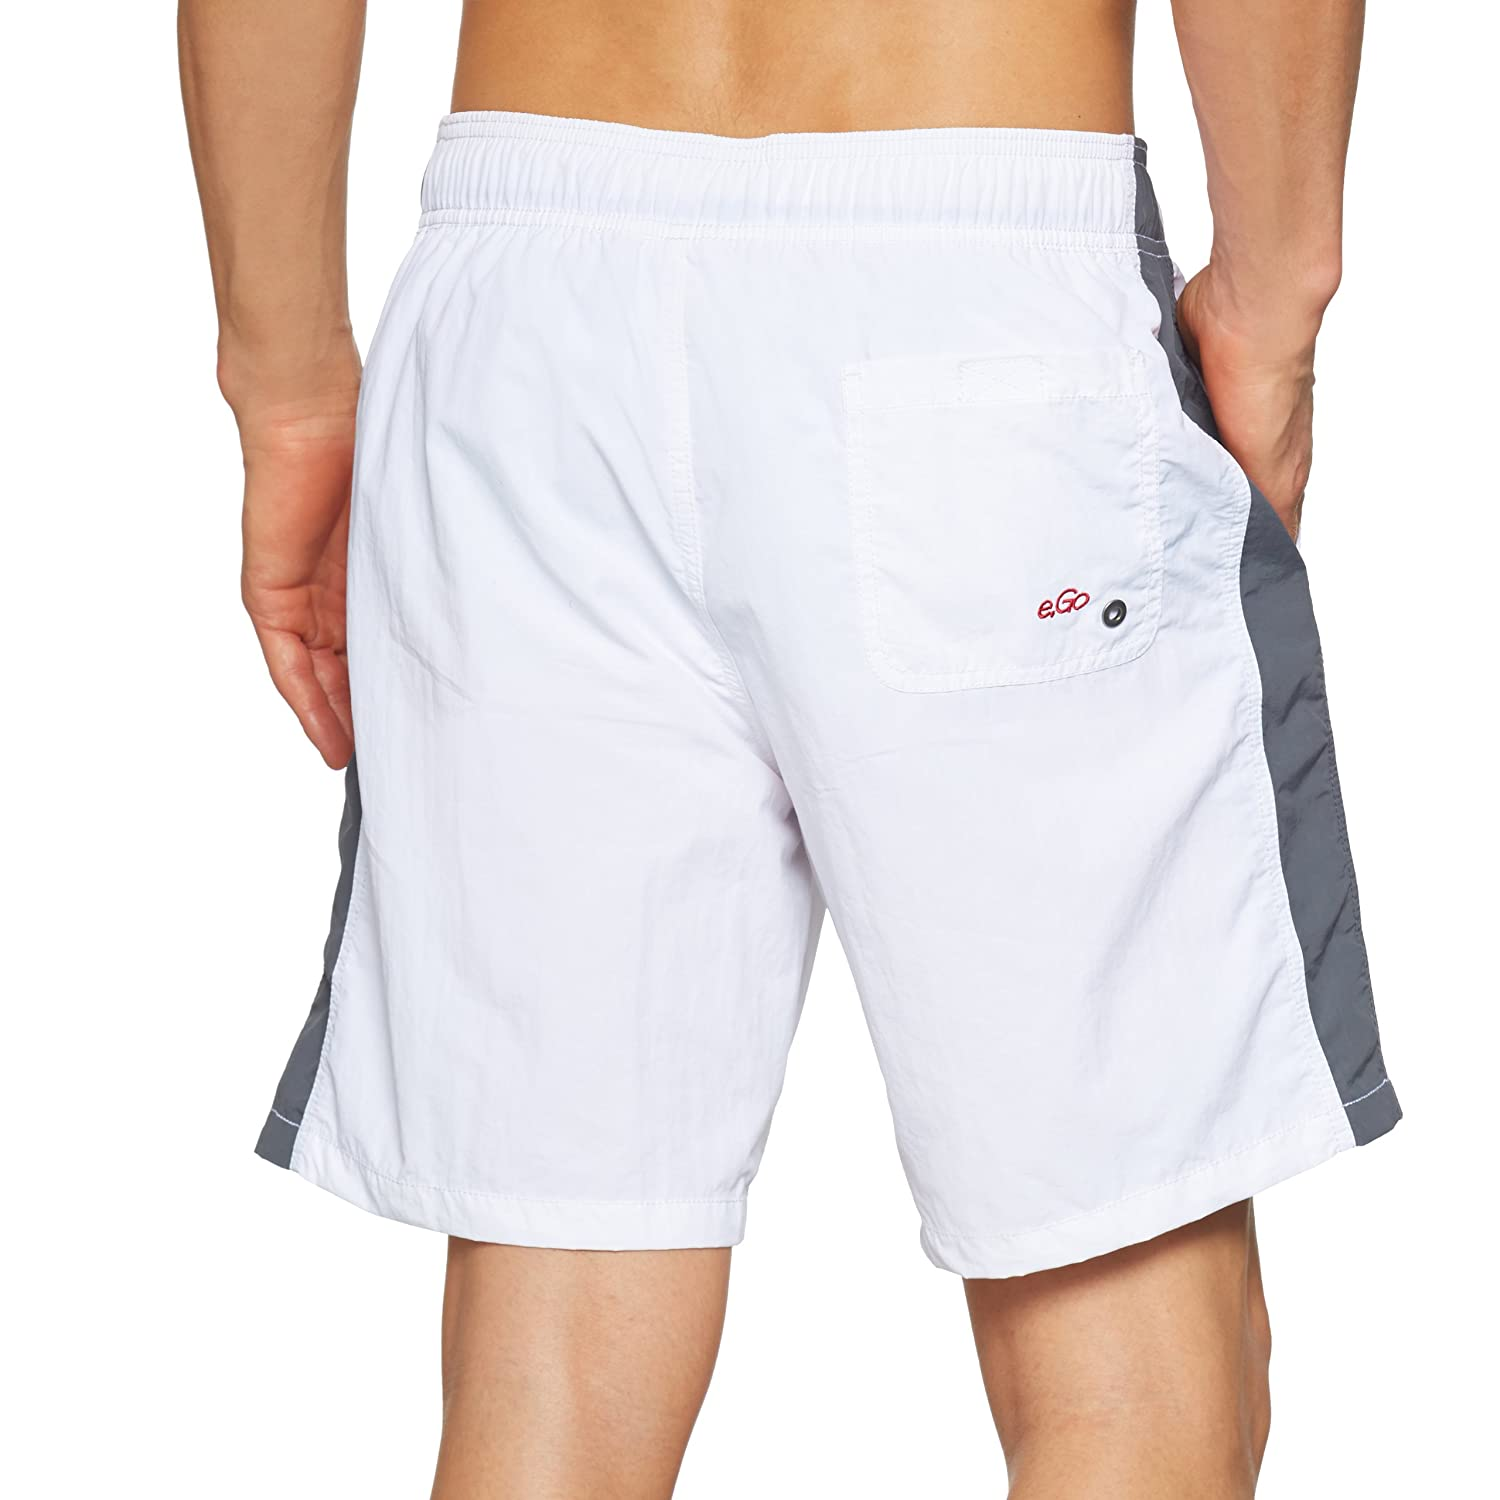 HOM Men's Swim Shorts